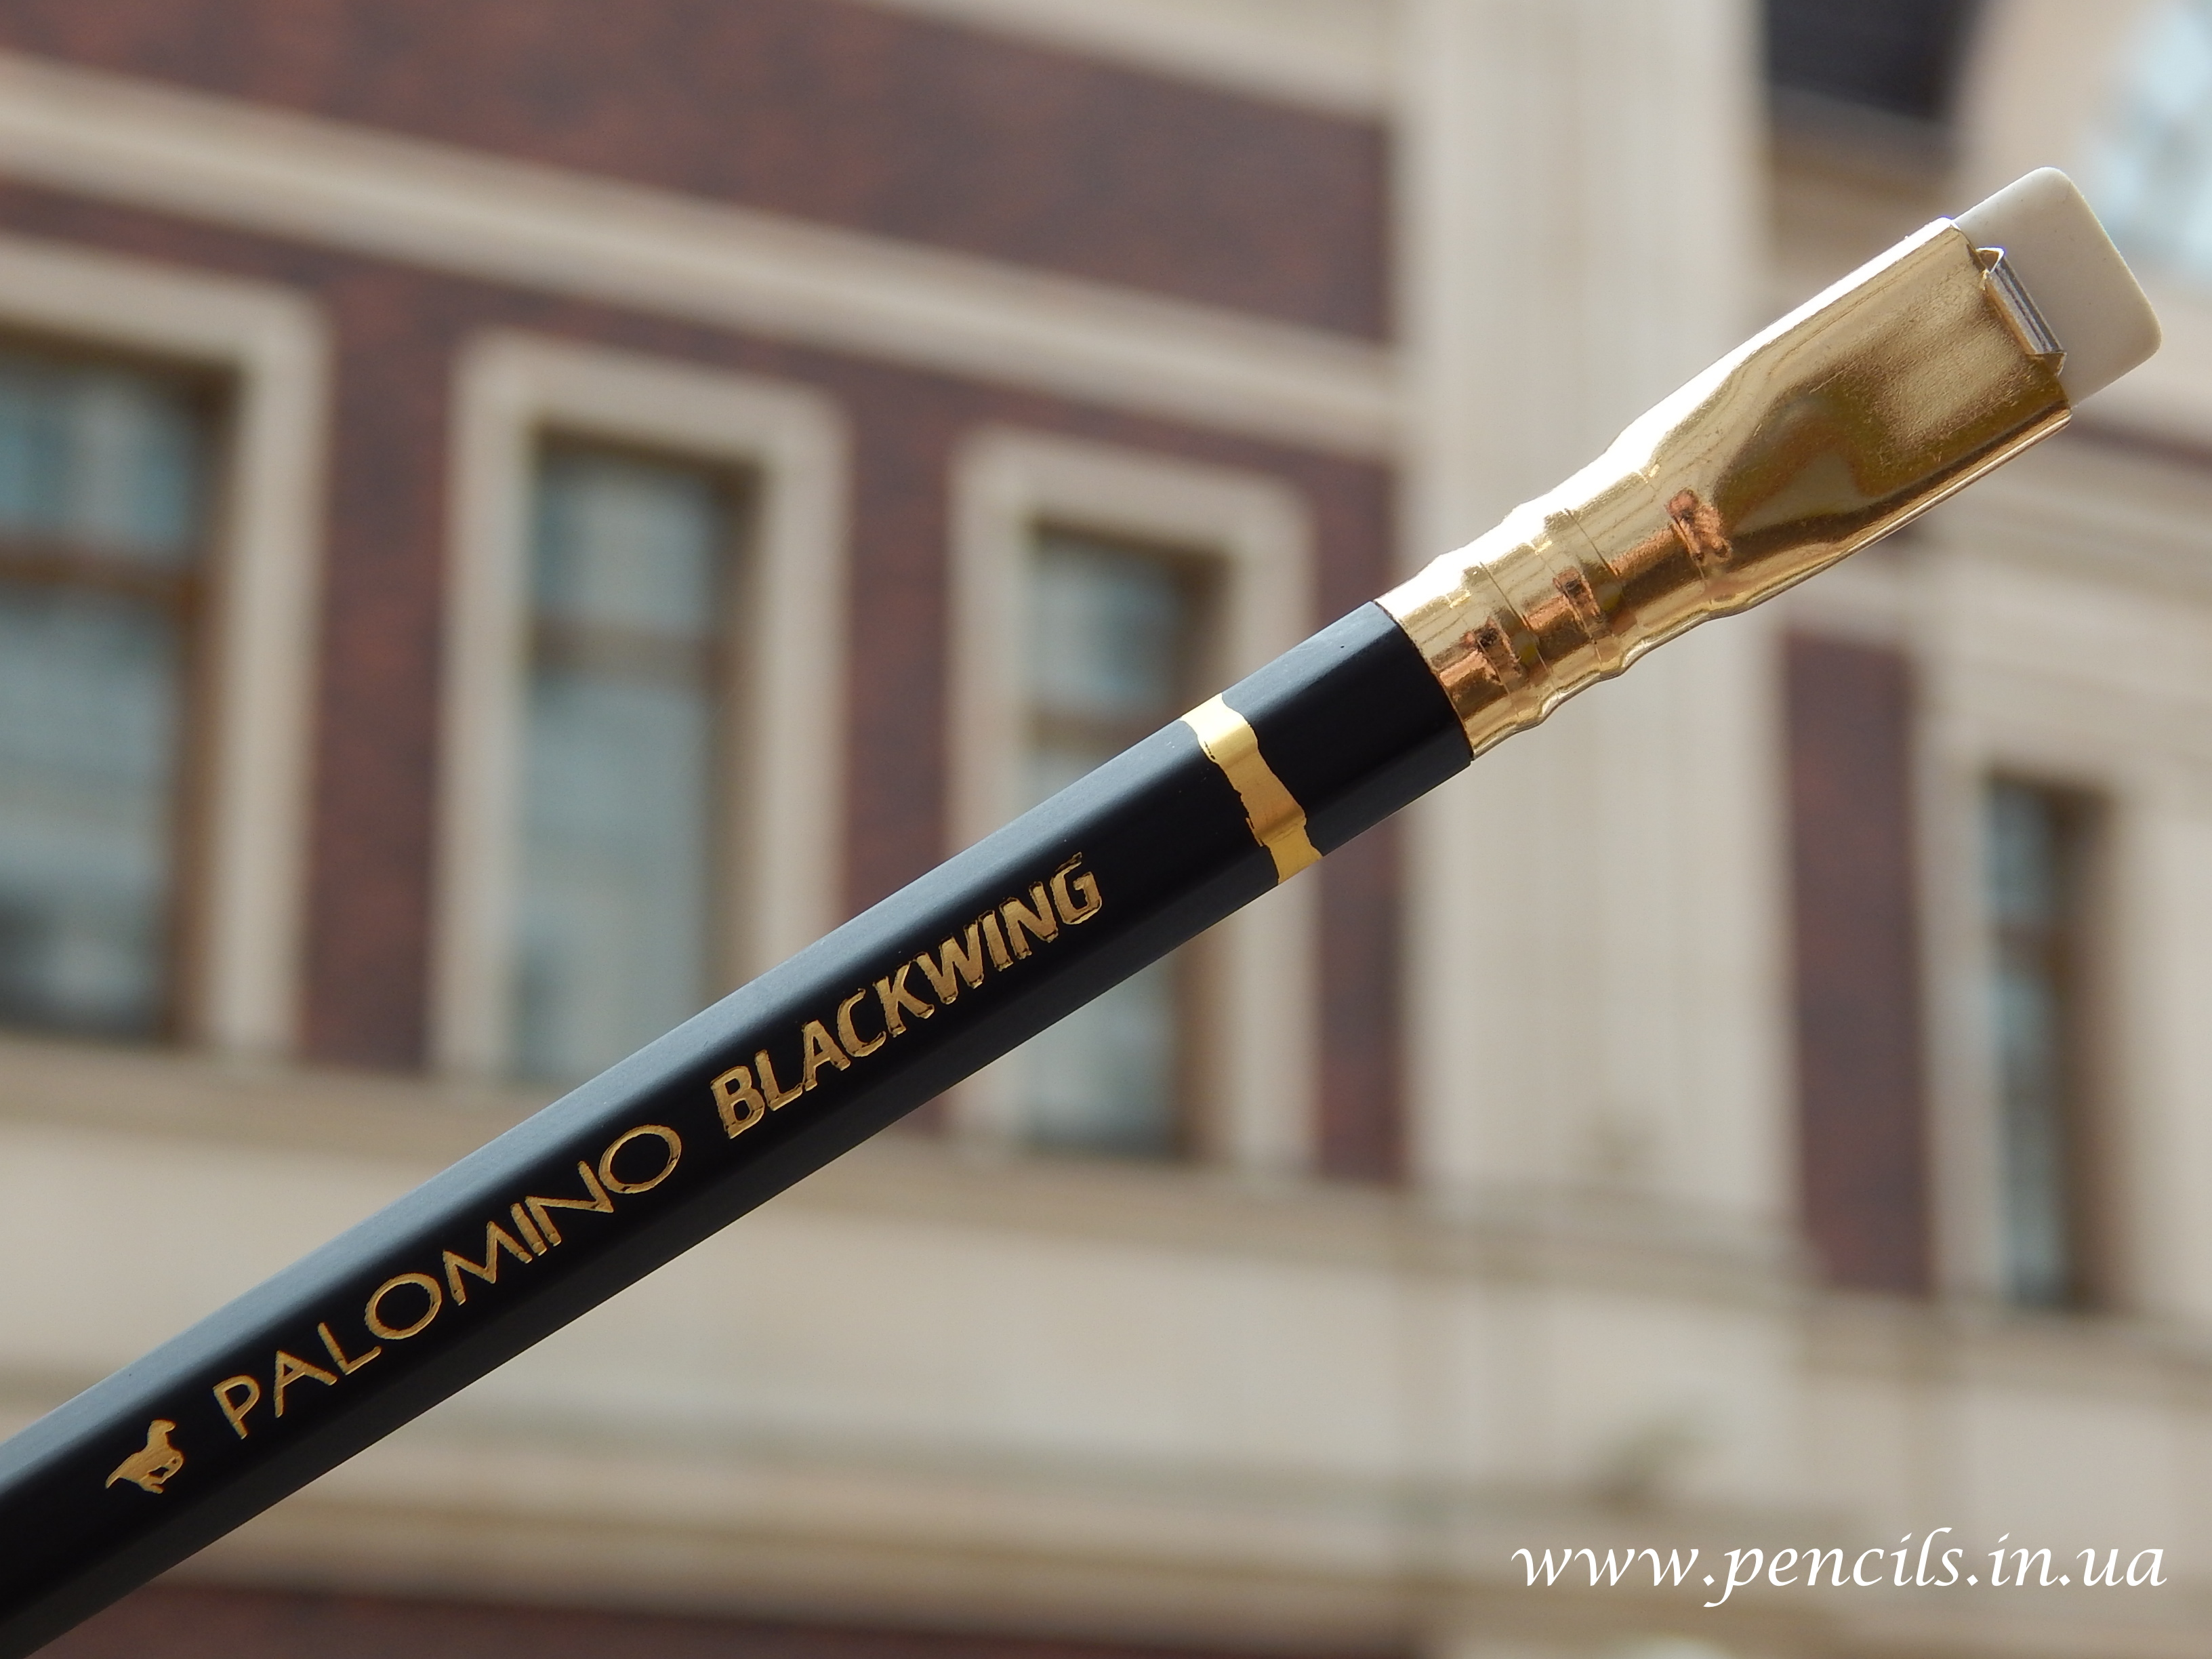 on a pencil essay Erasing with bread crumbs, pencil as murder weapon, and more.